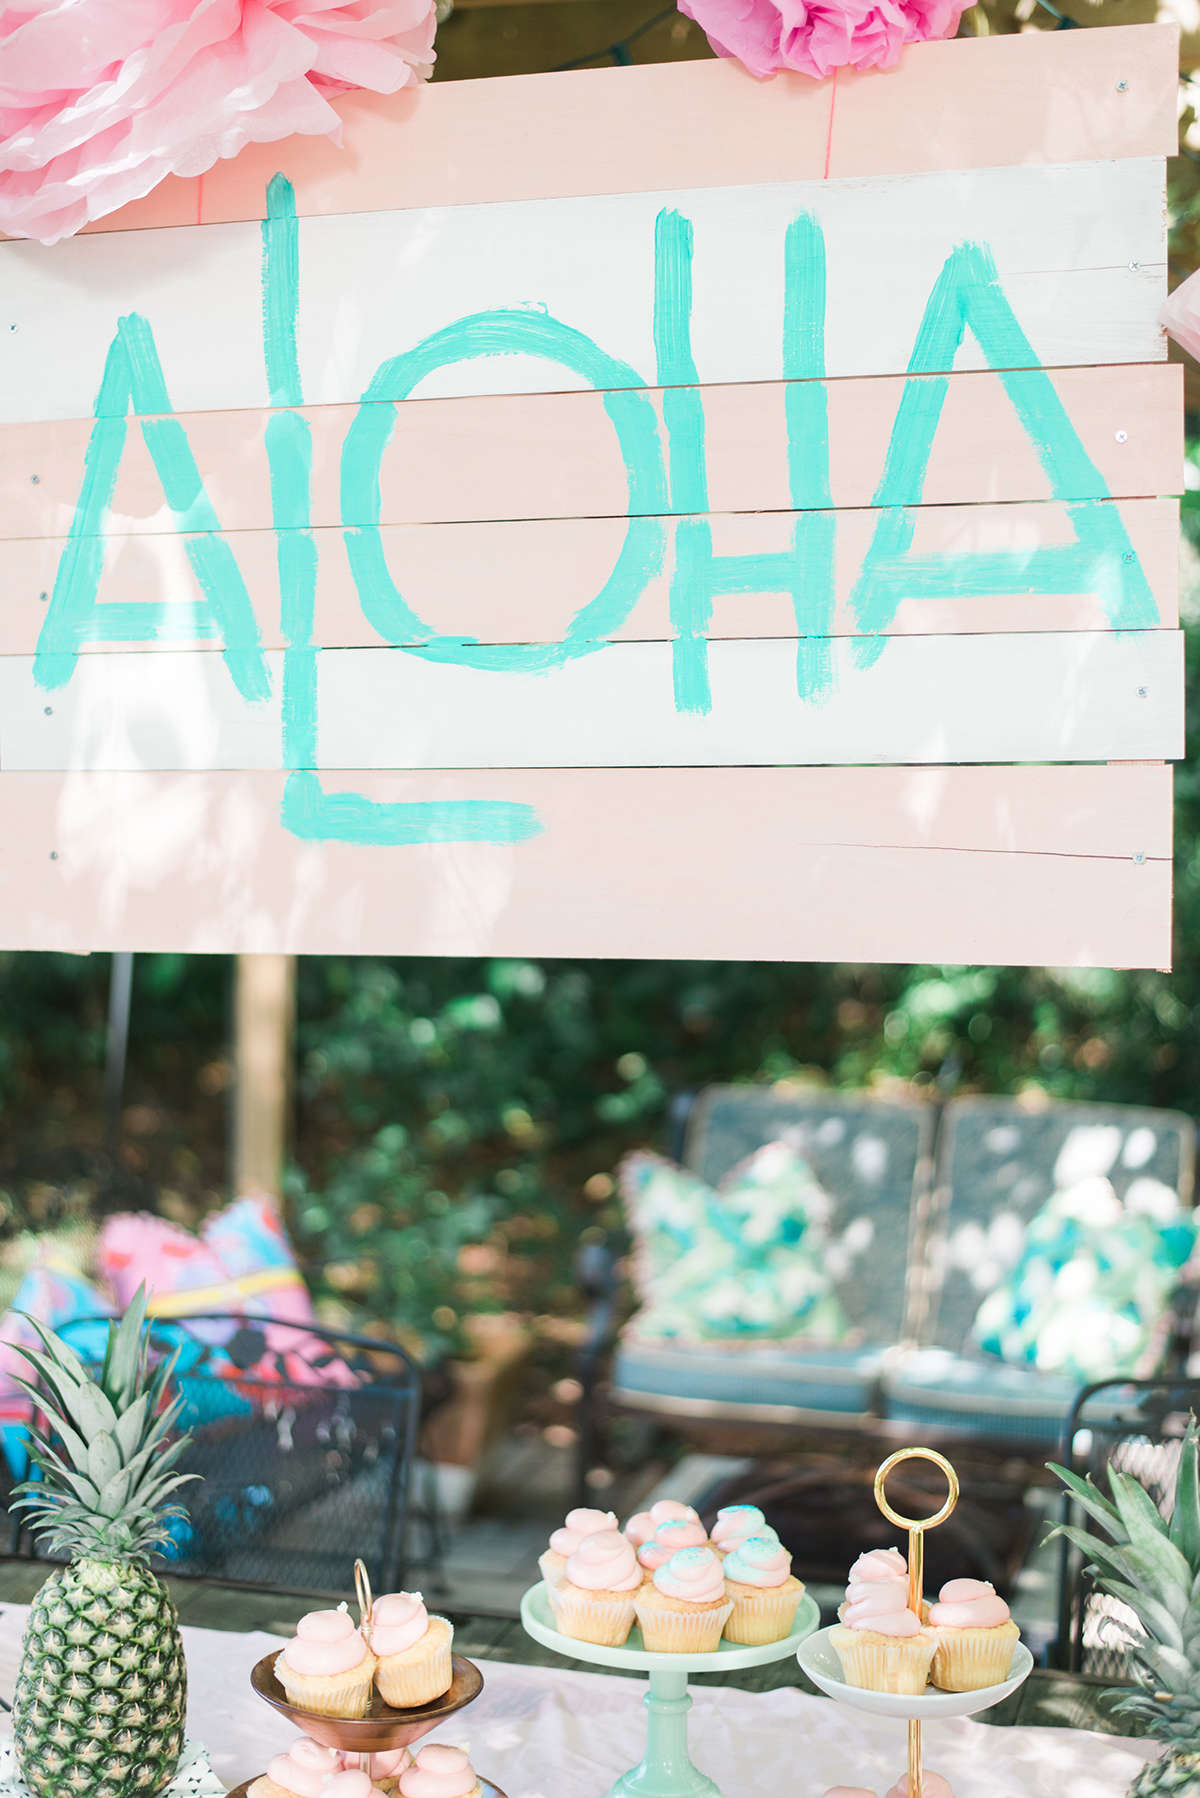 luau party for kids